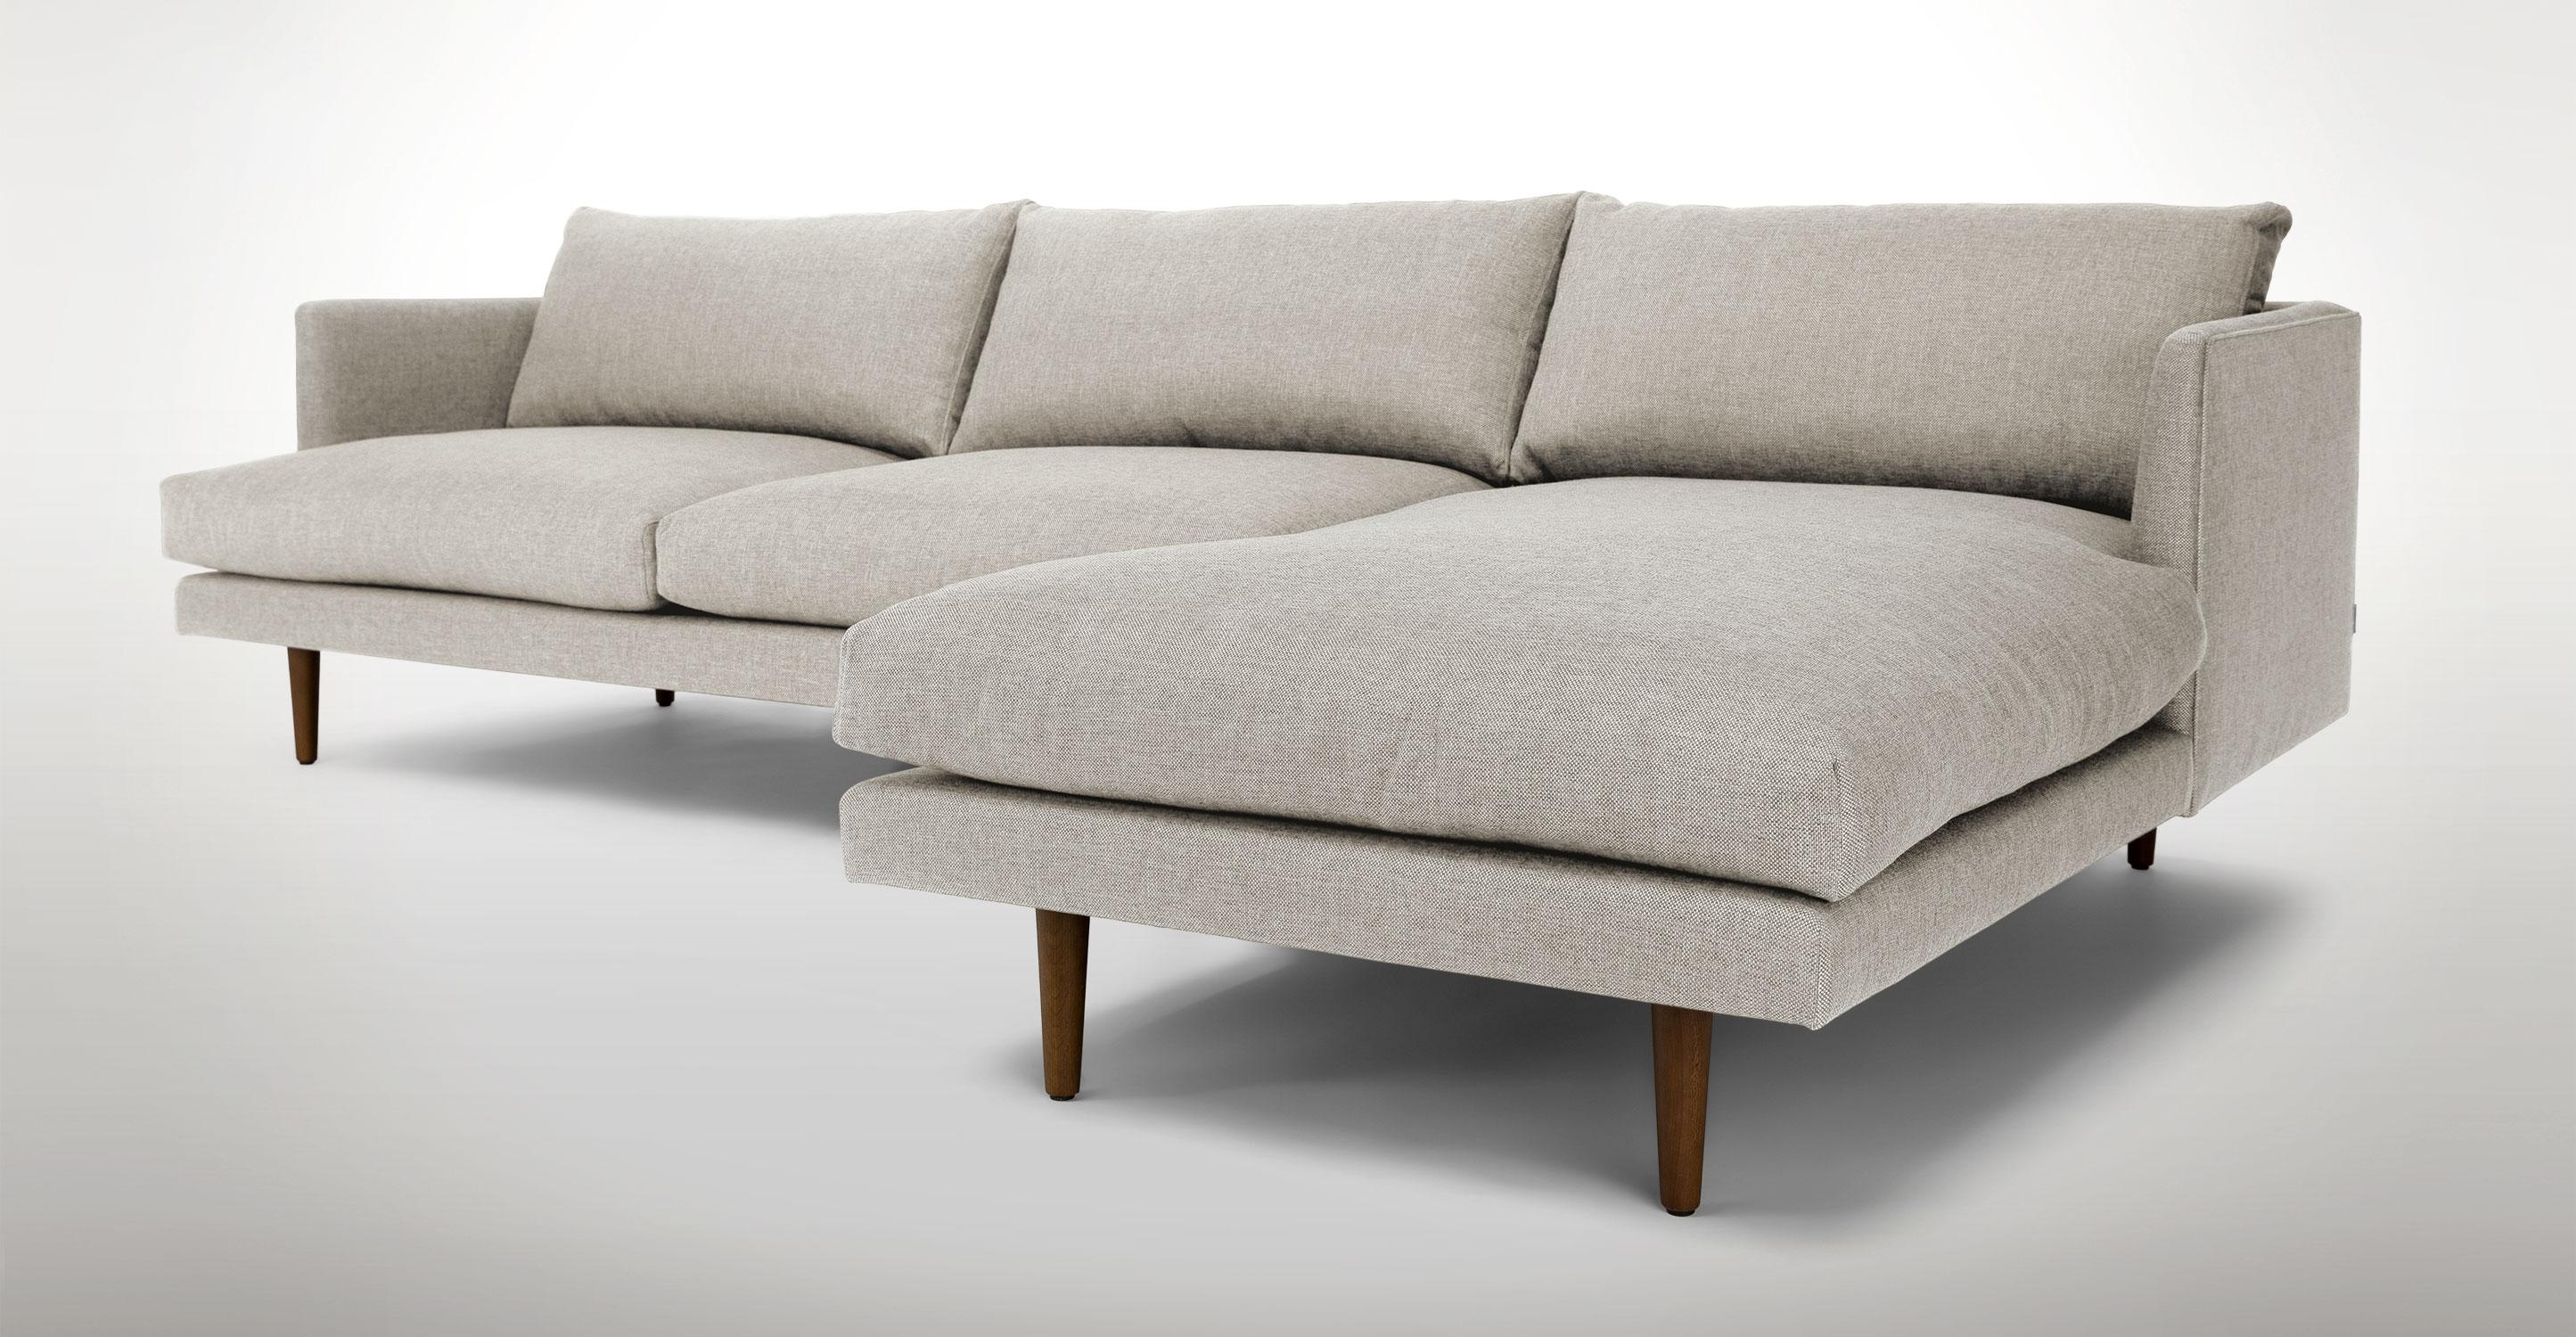 Decorating: Interesting Design Deep Sectional Sofa With Marvelous With Regard To Deep Cushion Sofa (View 16 of 20)